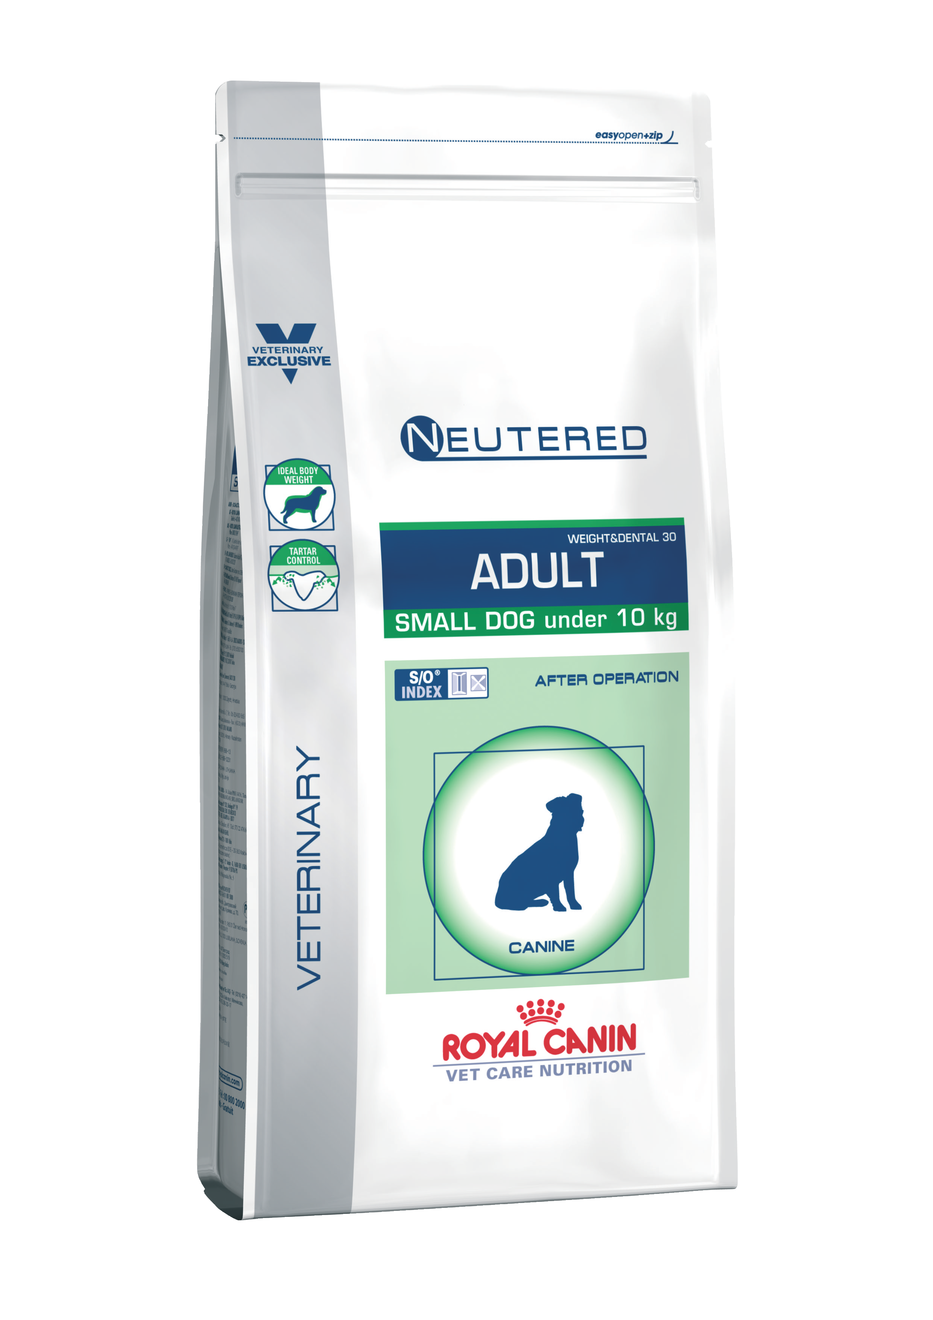 Royal Canin Neutered Small Dog<10kg